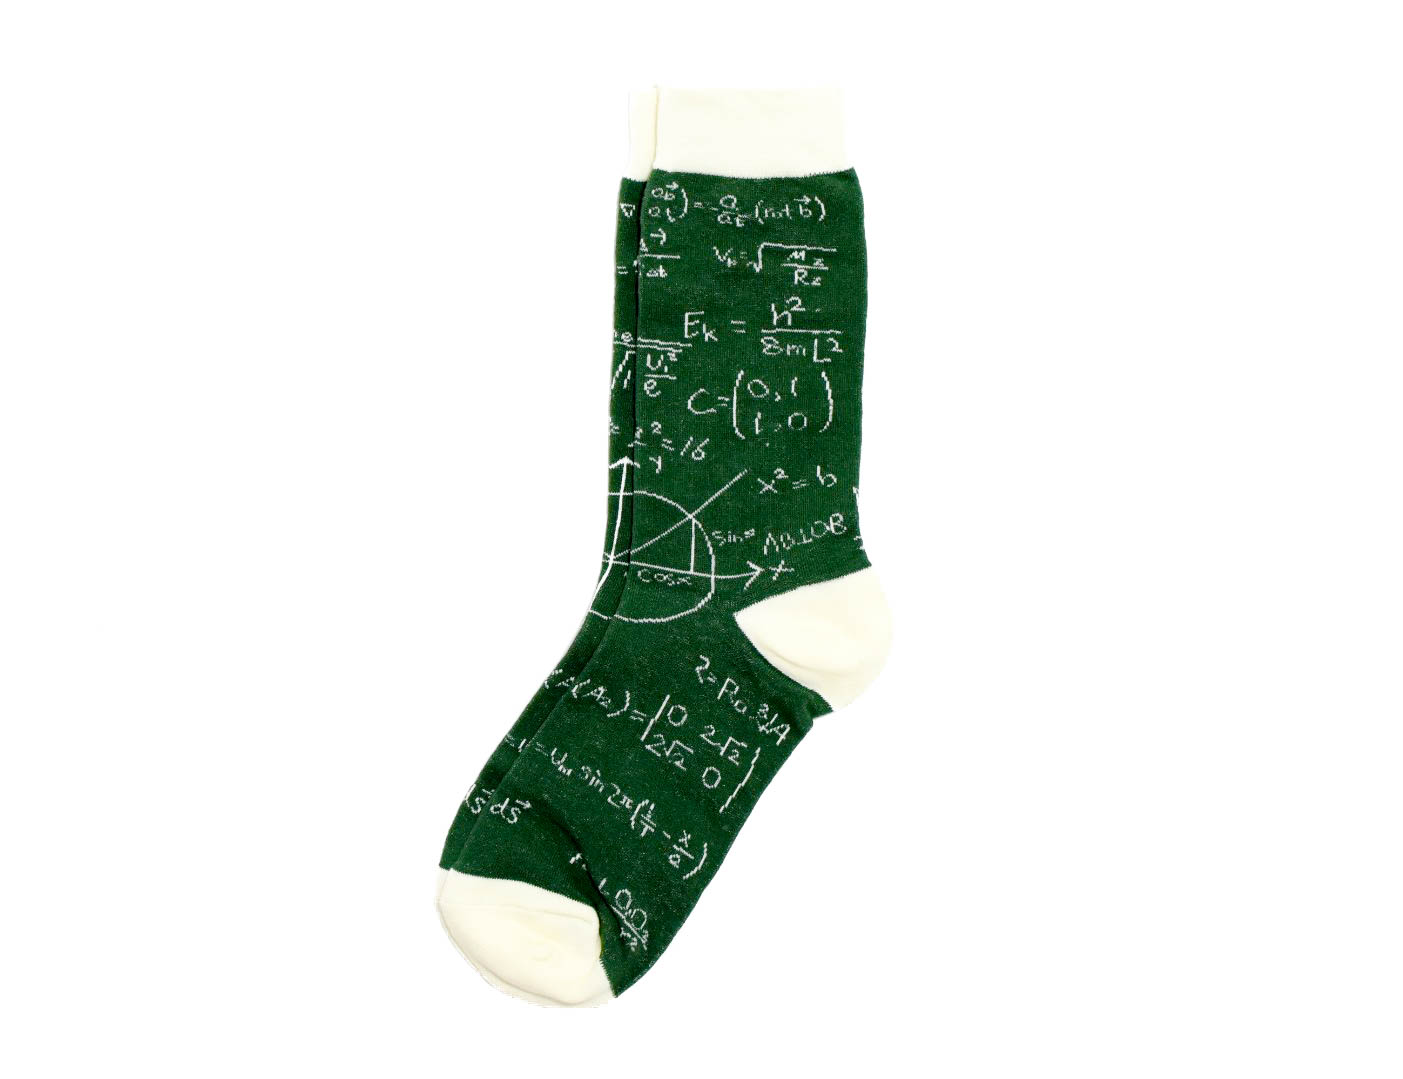 Cheat Sheet socks